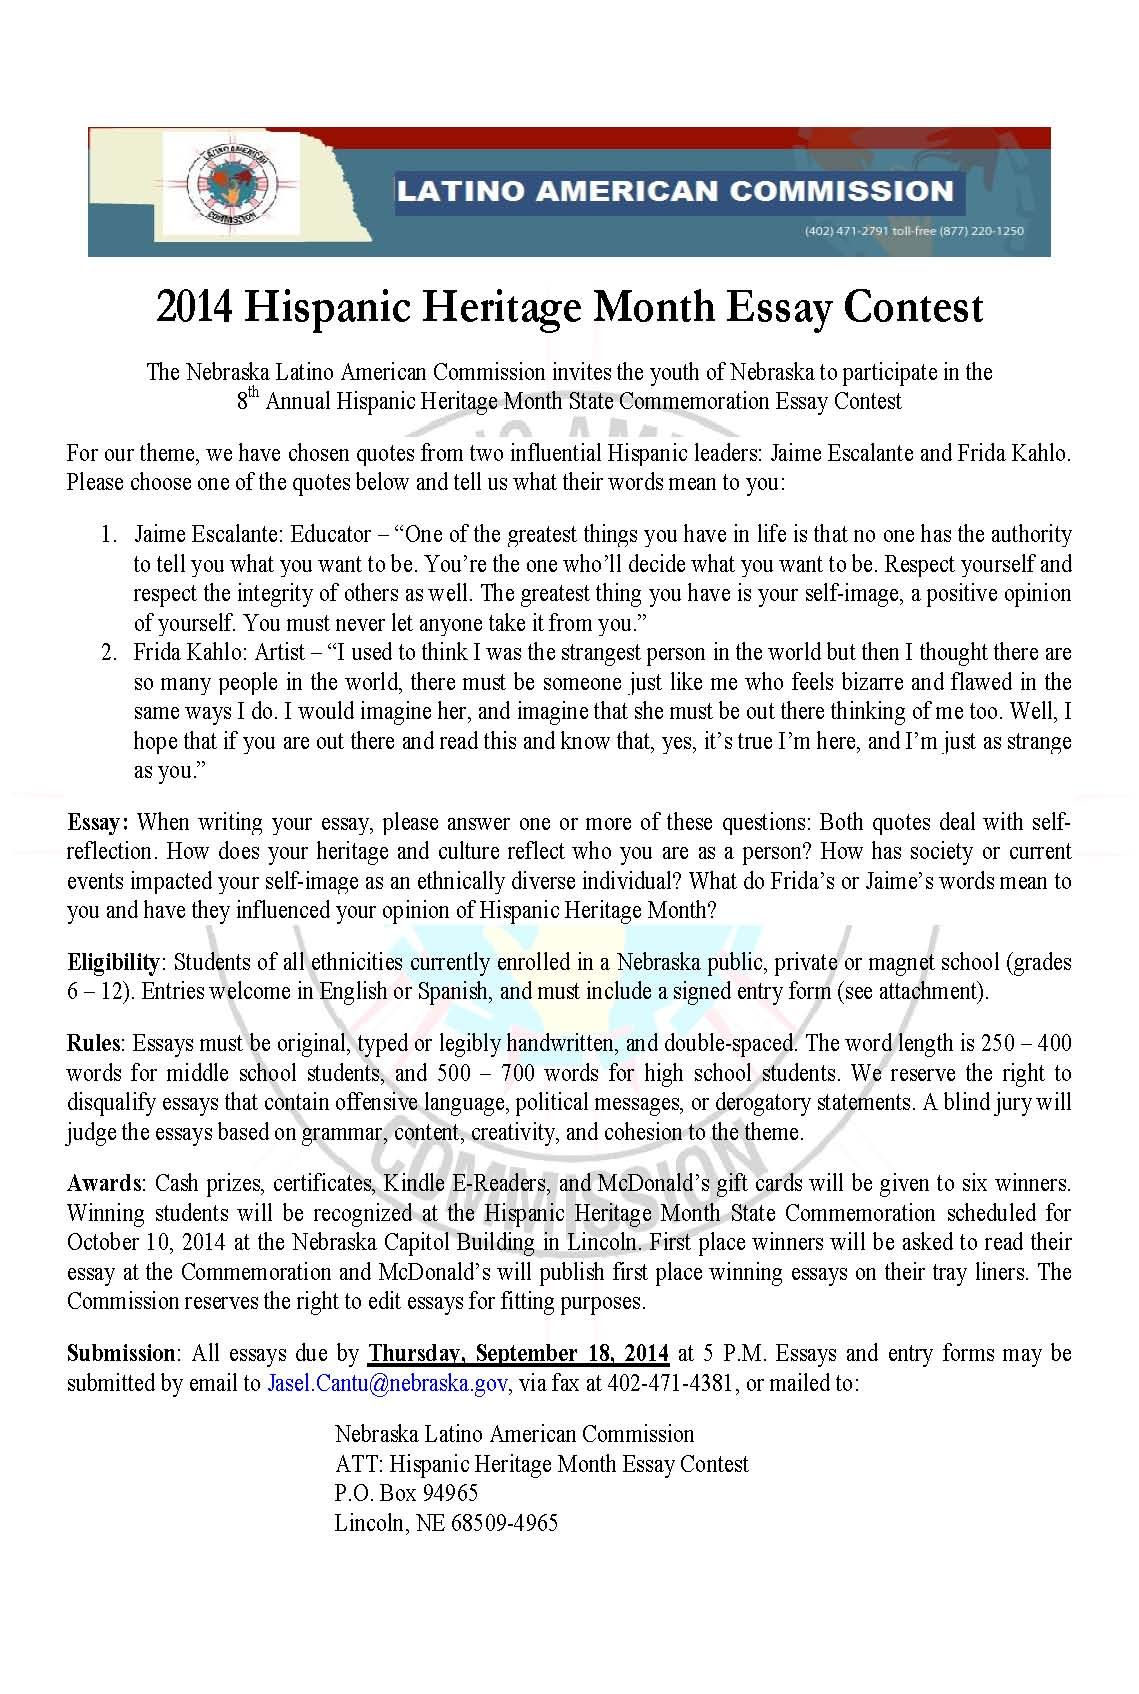 003 Essay Contests Imposing 2014 Maryknoll Contest Winners Full